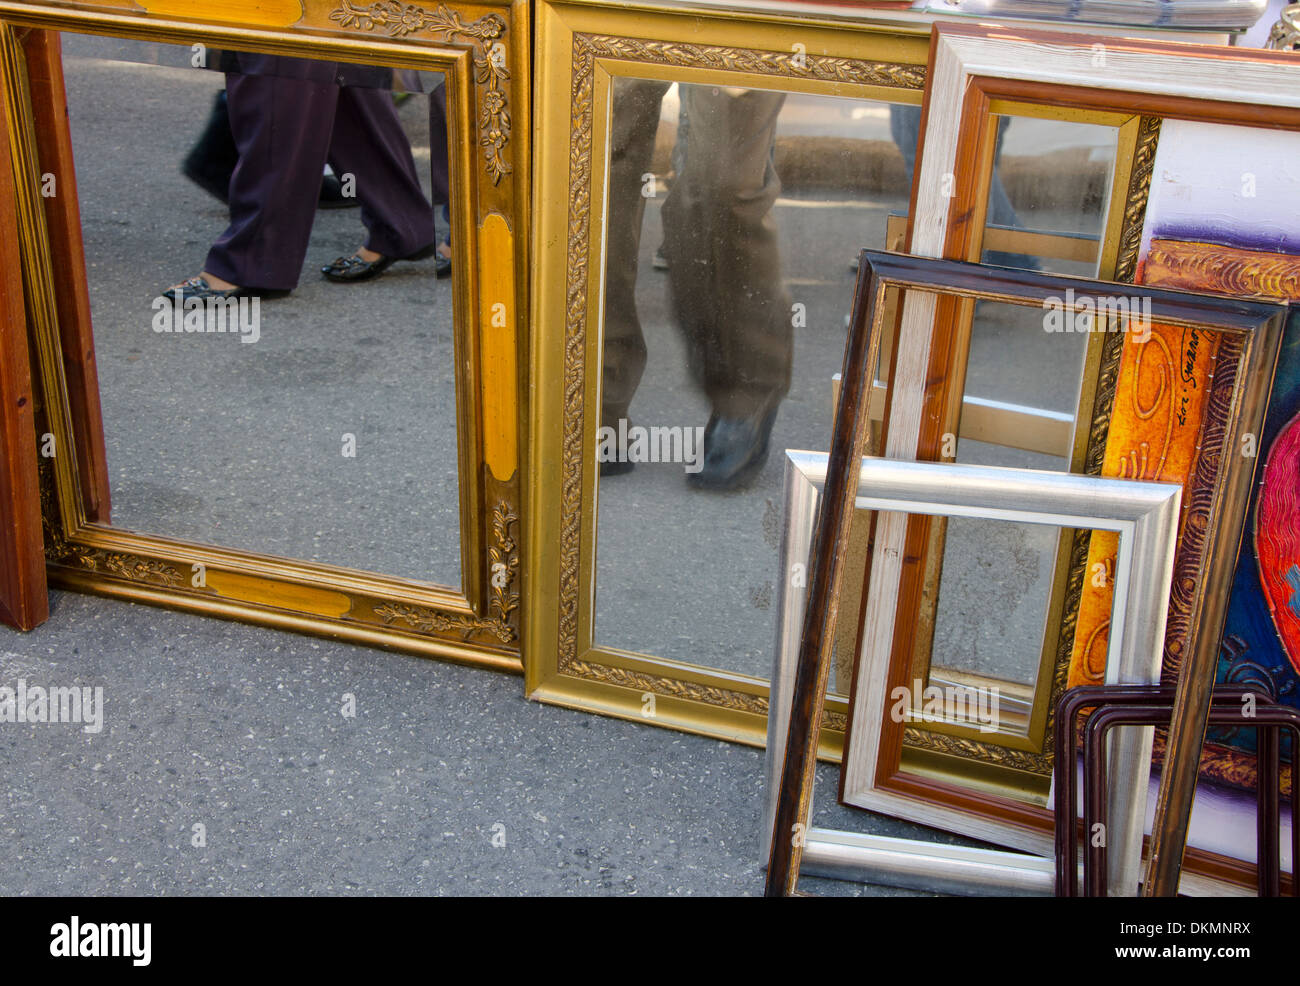 framed mirrors and frames for sale at second hand market in spain